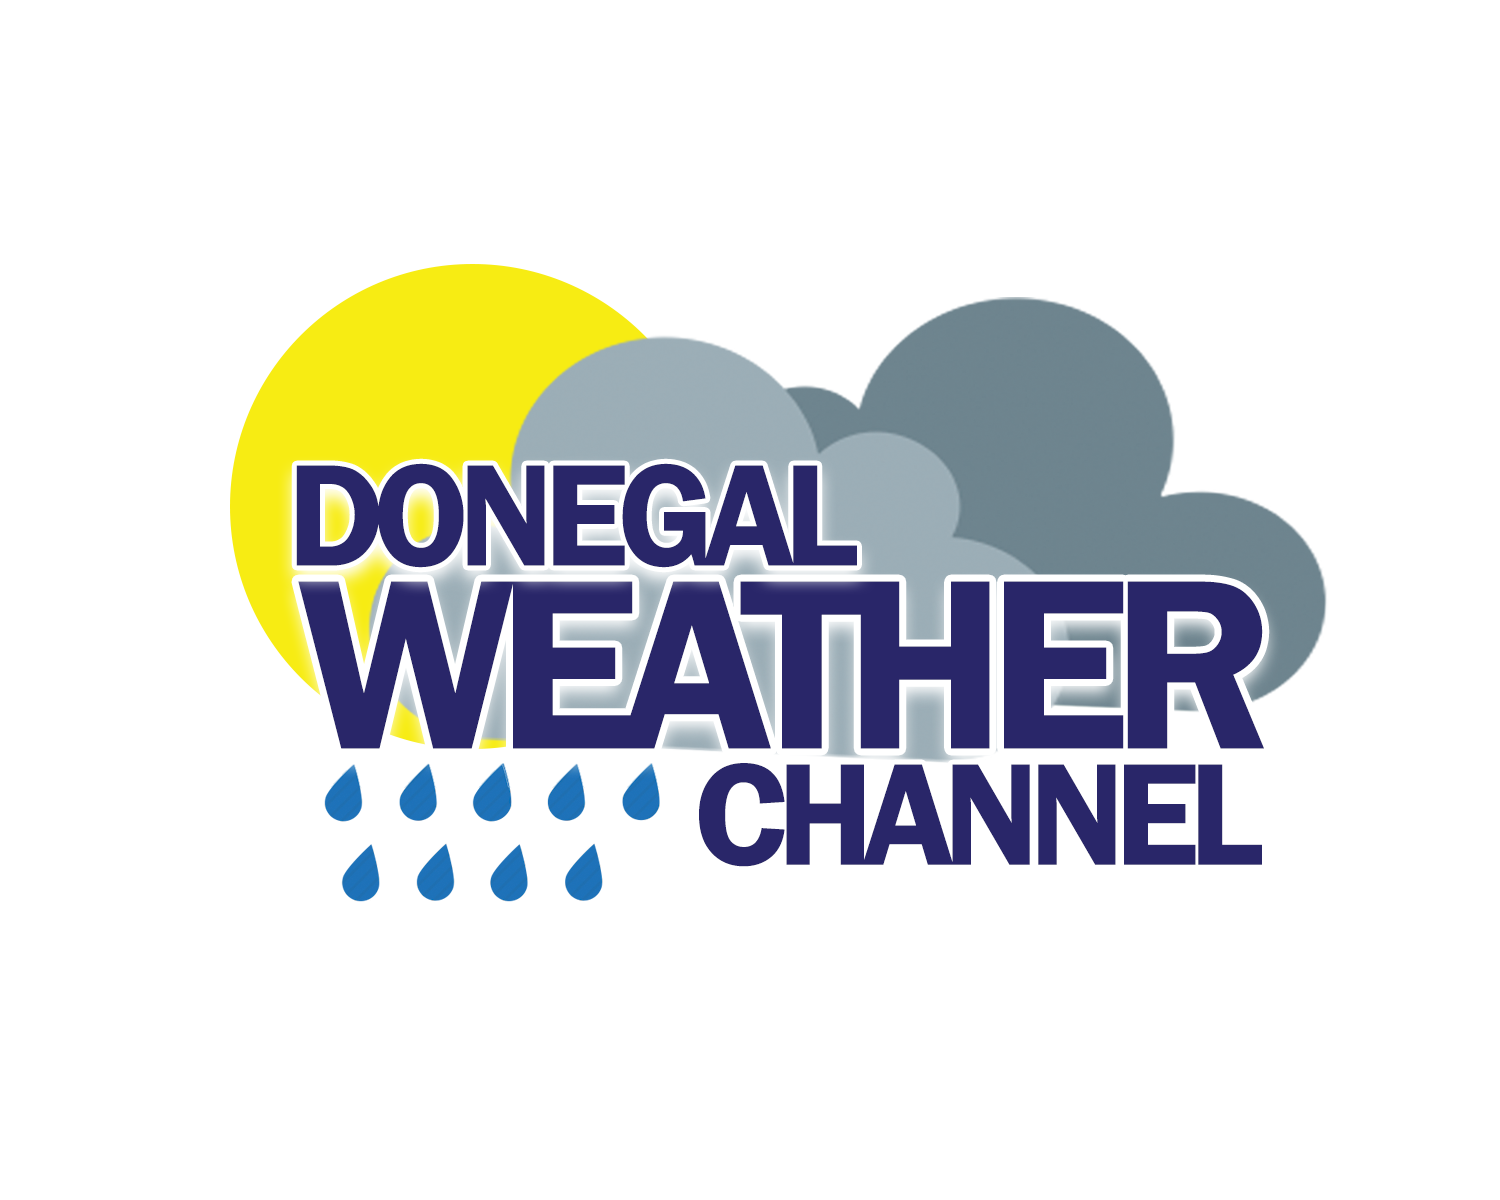 Hot clipart mild weather. Donegal channel warm update